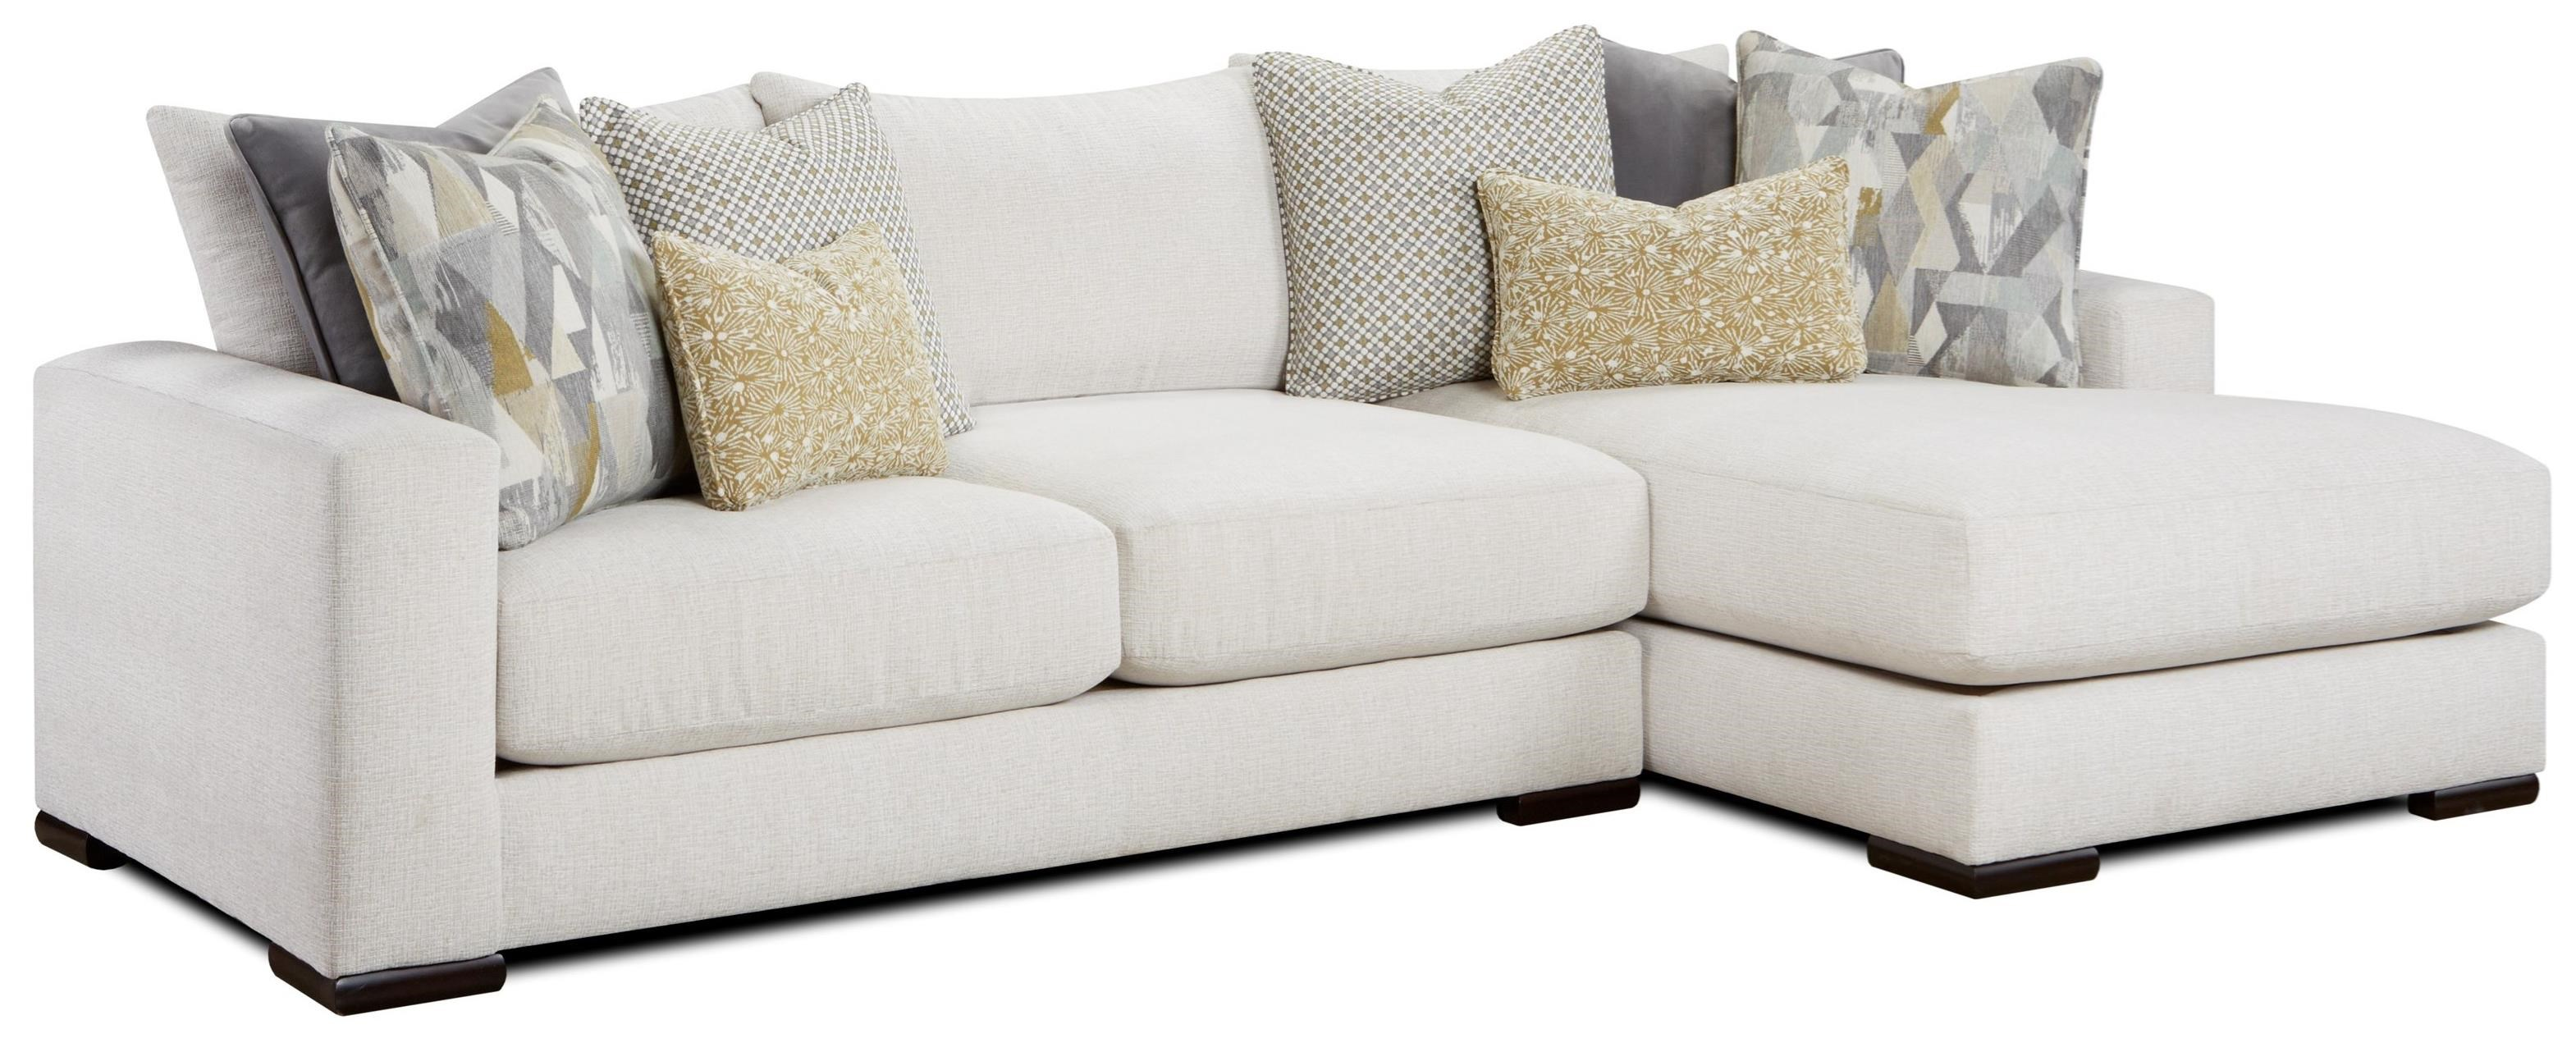 1050-20 2-Piece Sectional with Right Chaise by Fusion Furniture at Prime Brothers Furniture